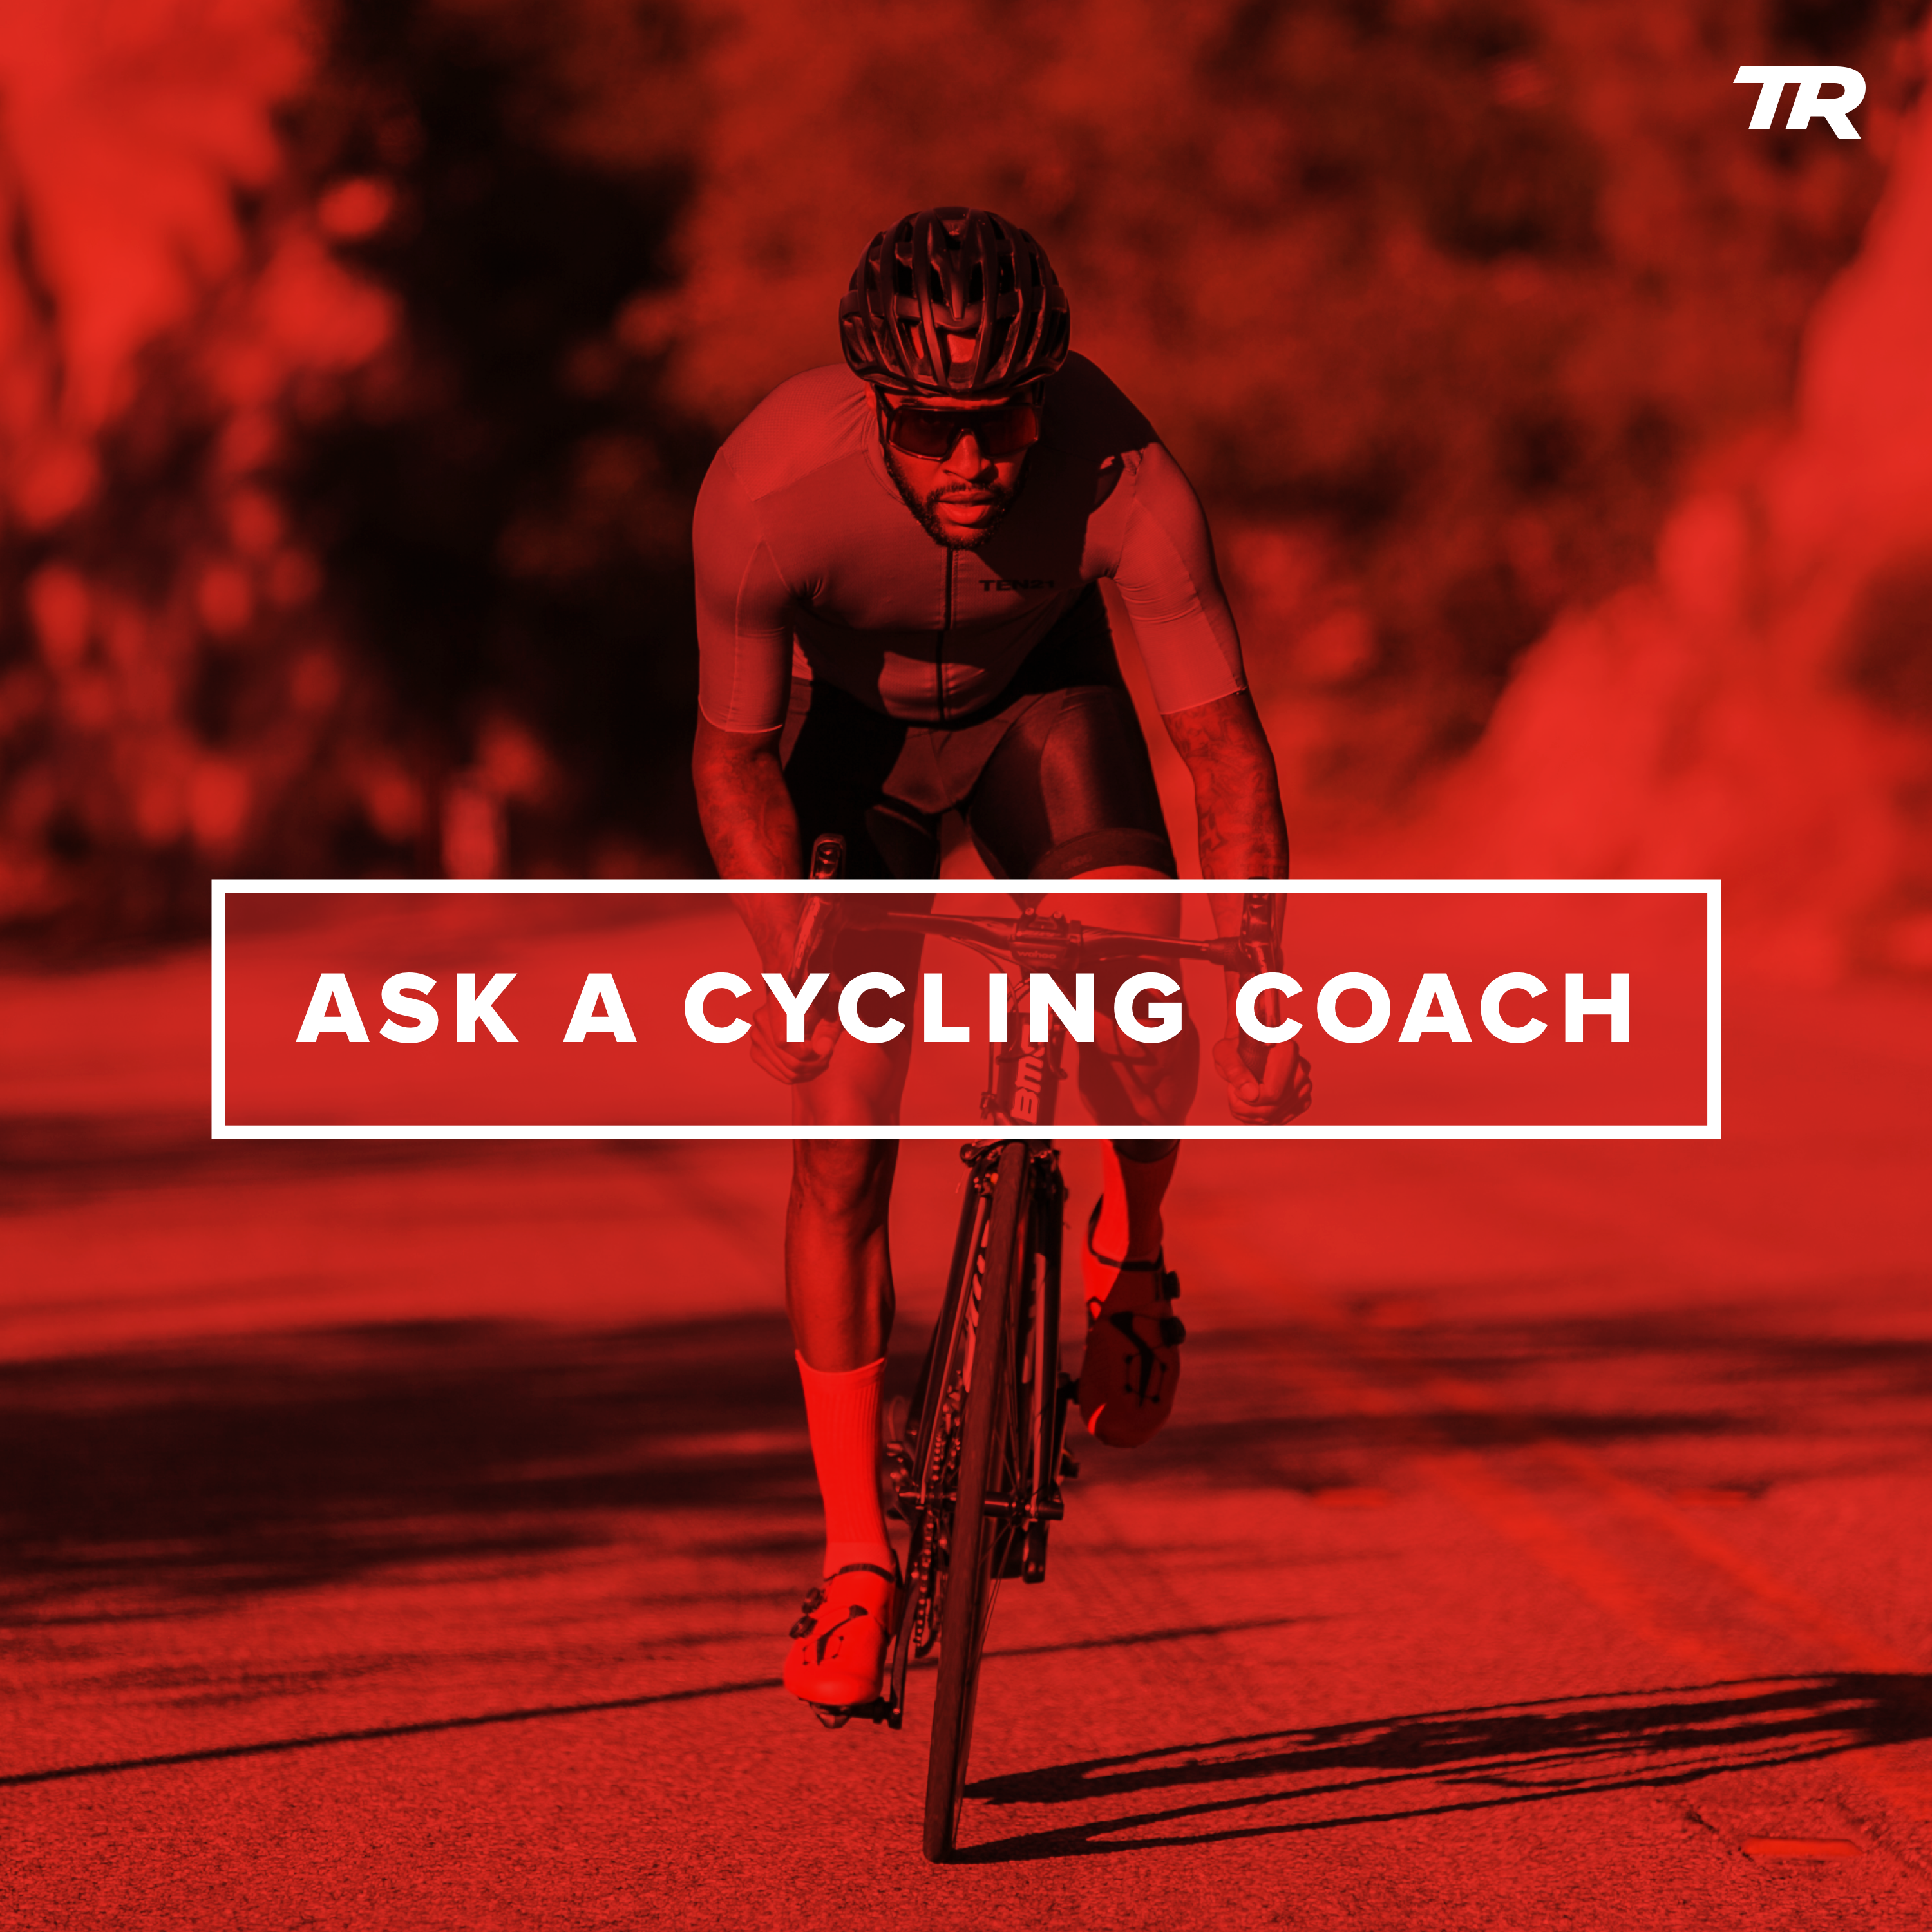 Testosterone, Explosivity, Leadout Trains and More – Ask a Cycling Coach 318